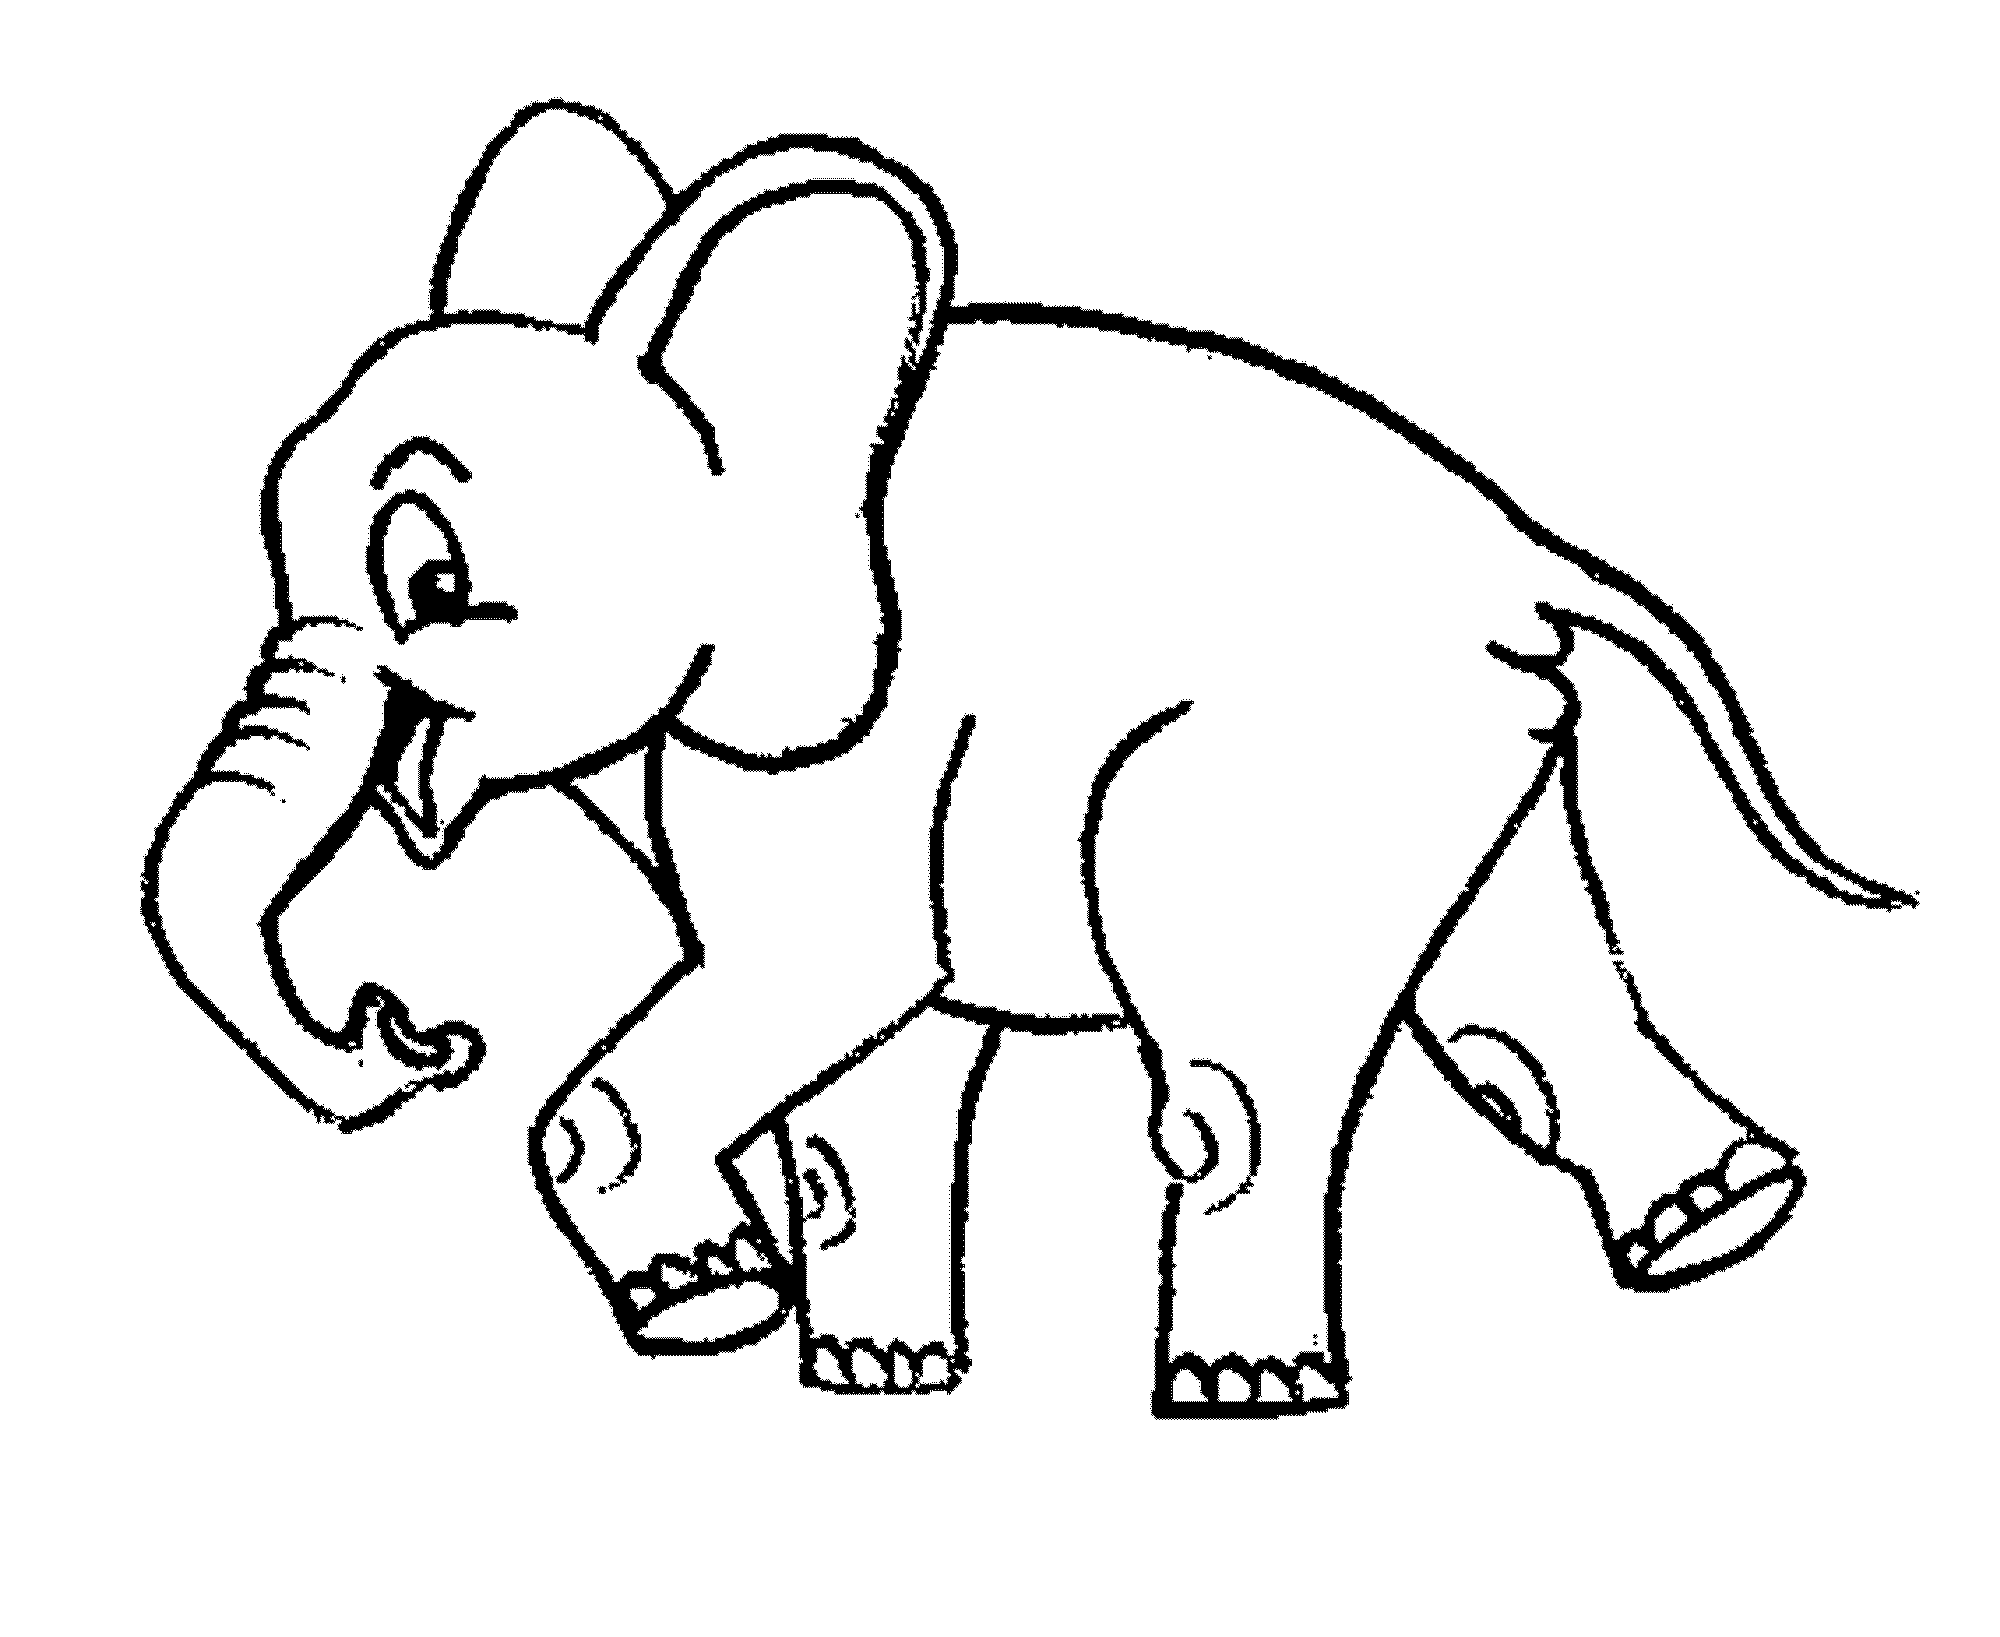 elephant coloring pages printable - Coloring Page Elephant Design